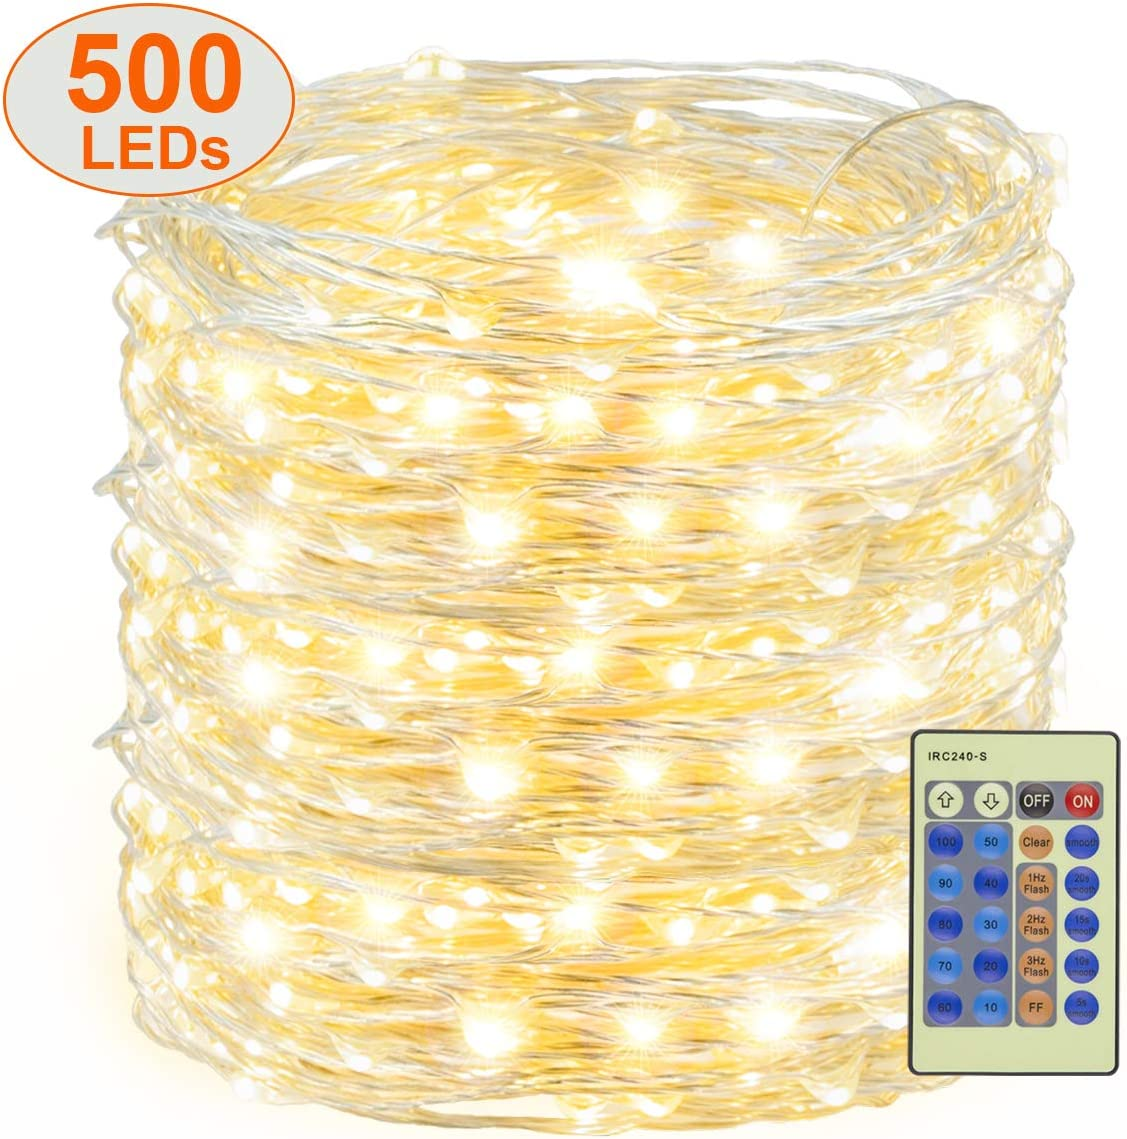 Decute 500 LED Fairy Lights Warm White 164ft Silver Wire String Lights w/Remote, LED Firefly Lights Starry Light for DIY Christmas Tree Costume Wedding Party Table Centerpiece Decor